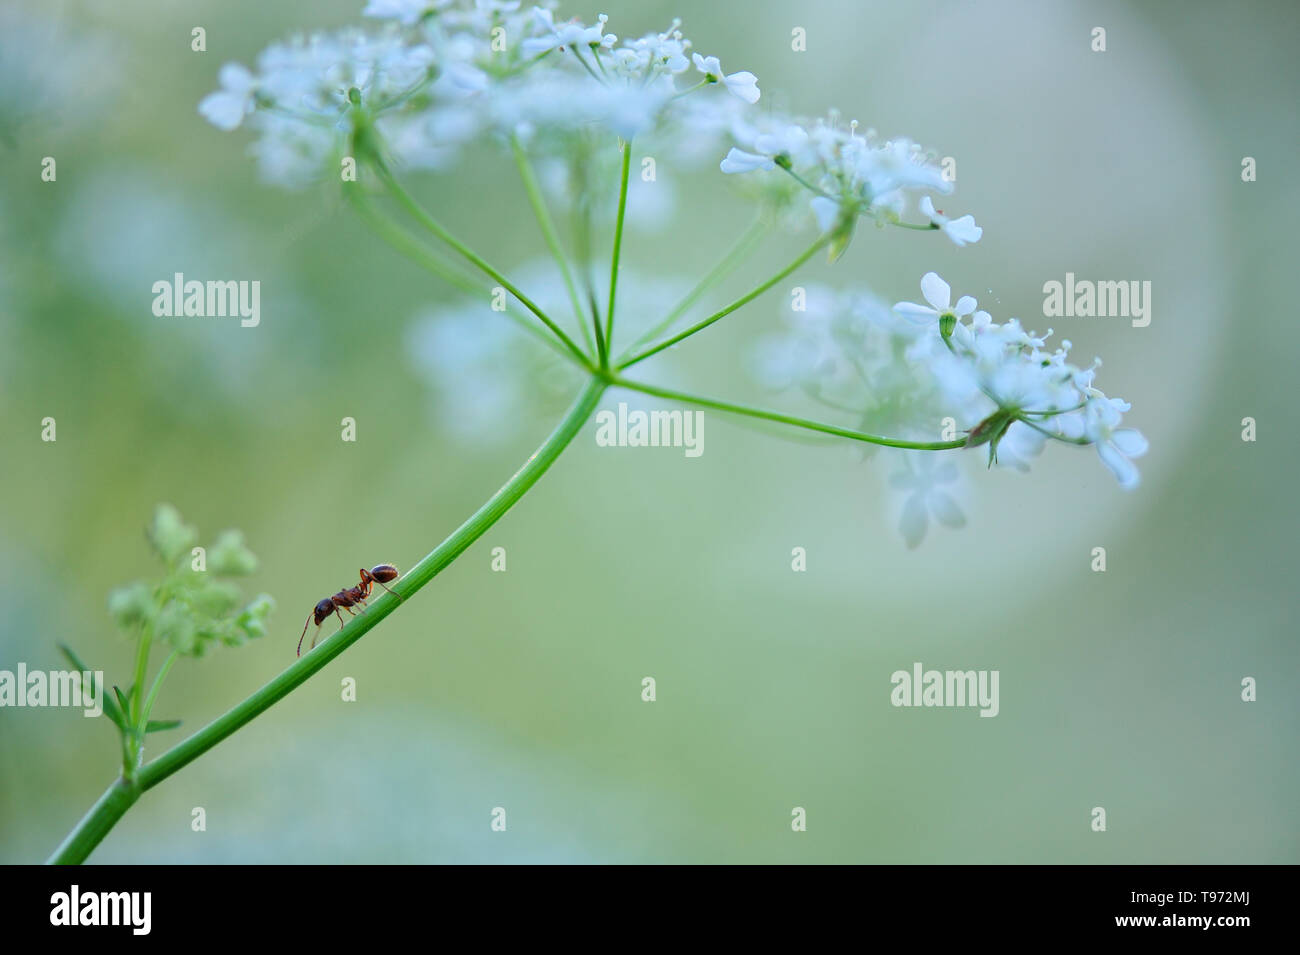 Ant crawling across cow parsley - Stock Image